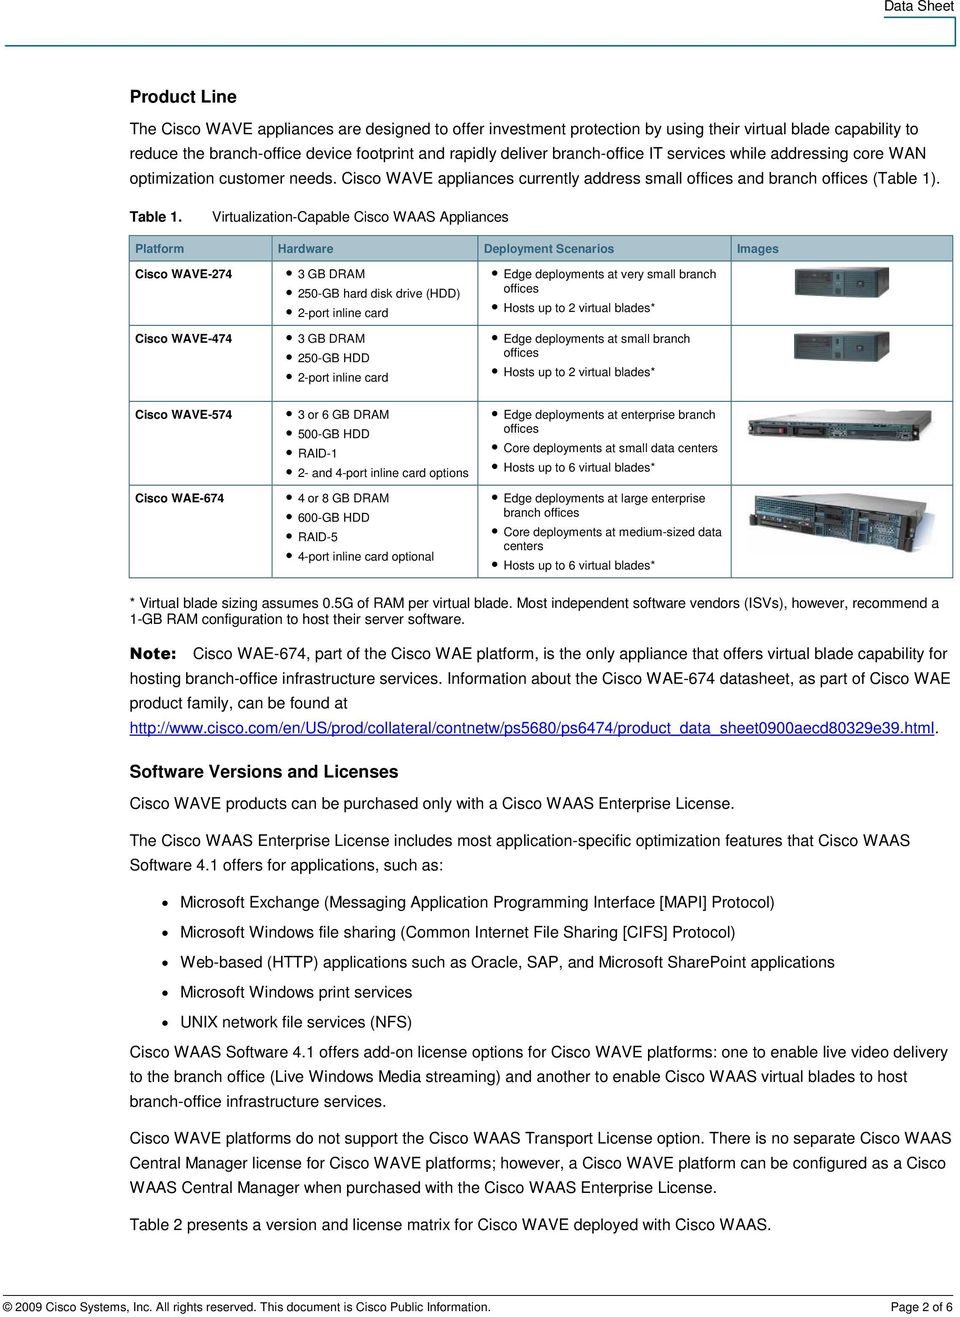 Virtualization-Capable Cisco WAAS Appliances Platform Hardware Deployment Scenarios Images Cisco WAVE-274 Cisco WAVE-474 3 GB DRAM 250-GB hard disk drive (HDD) 2-port inline card 3 GB DRAM 250-GB HDD